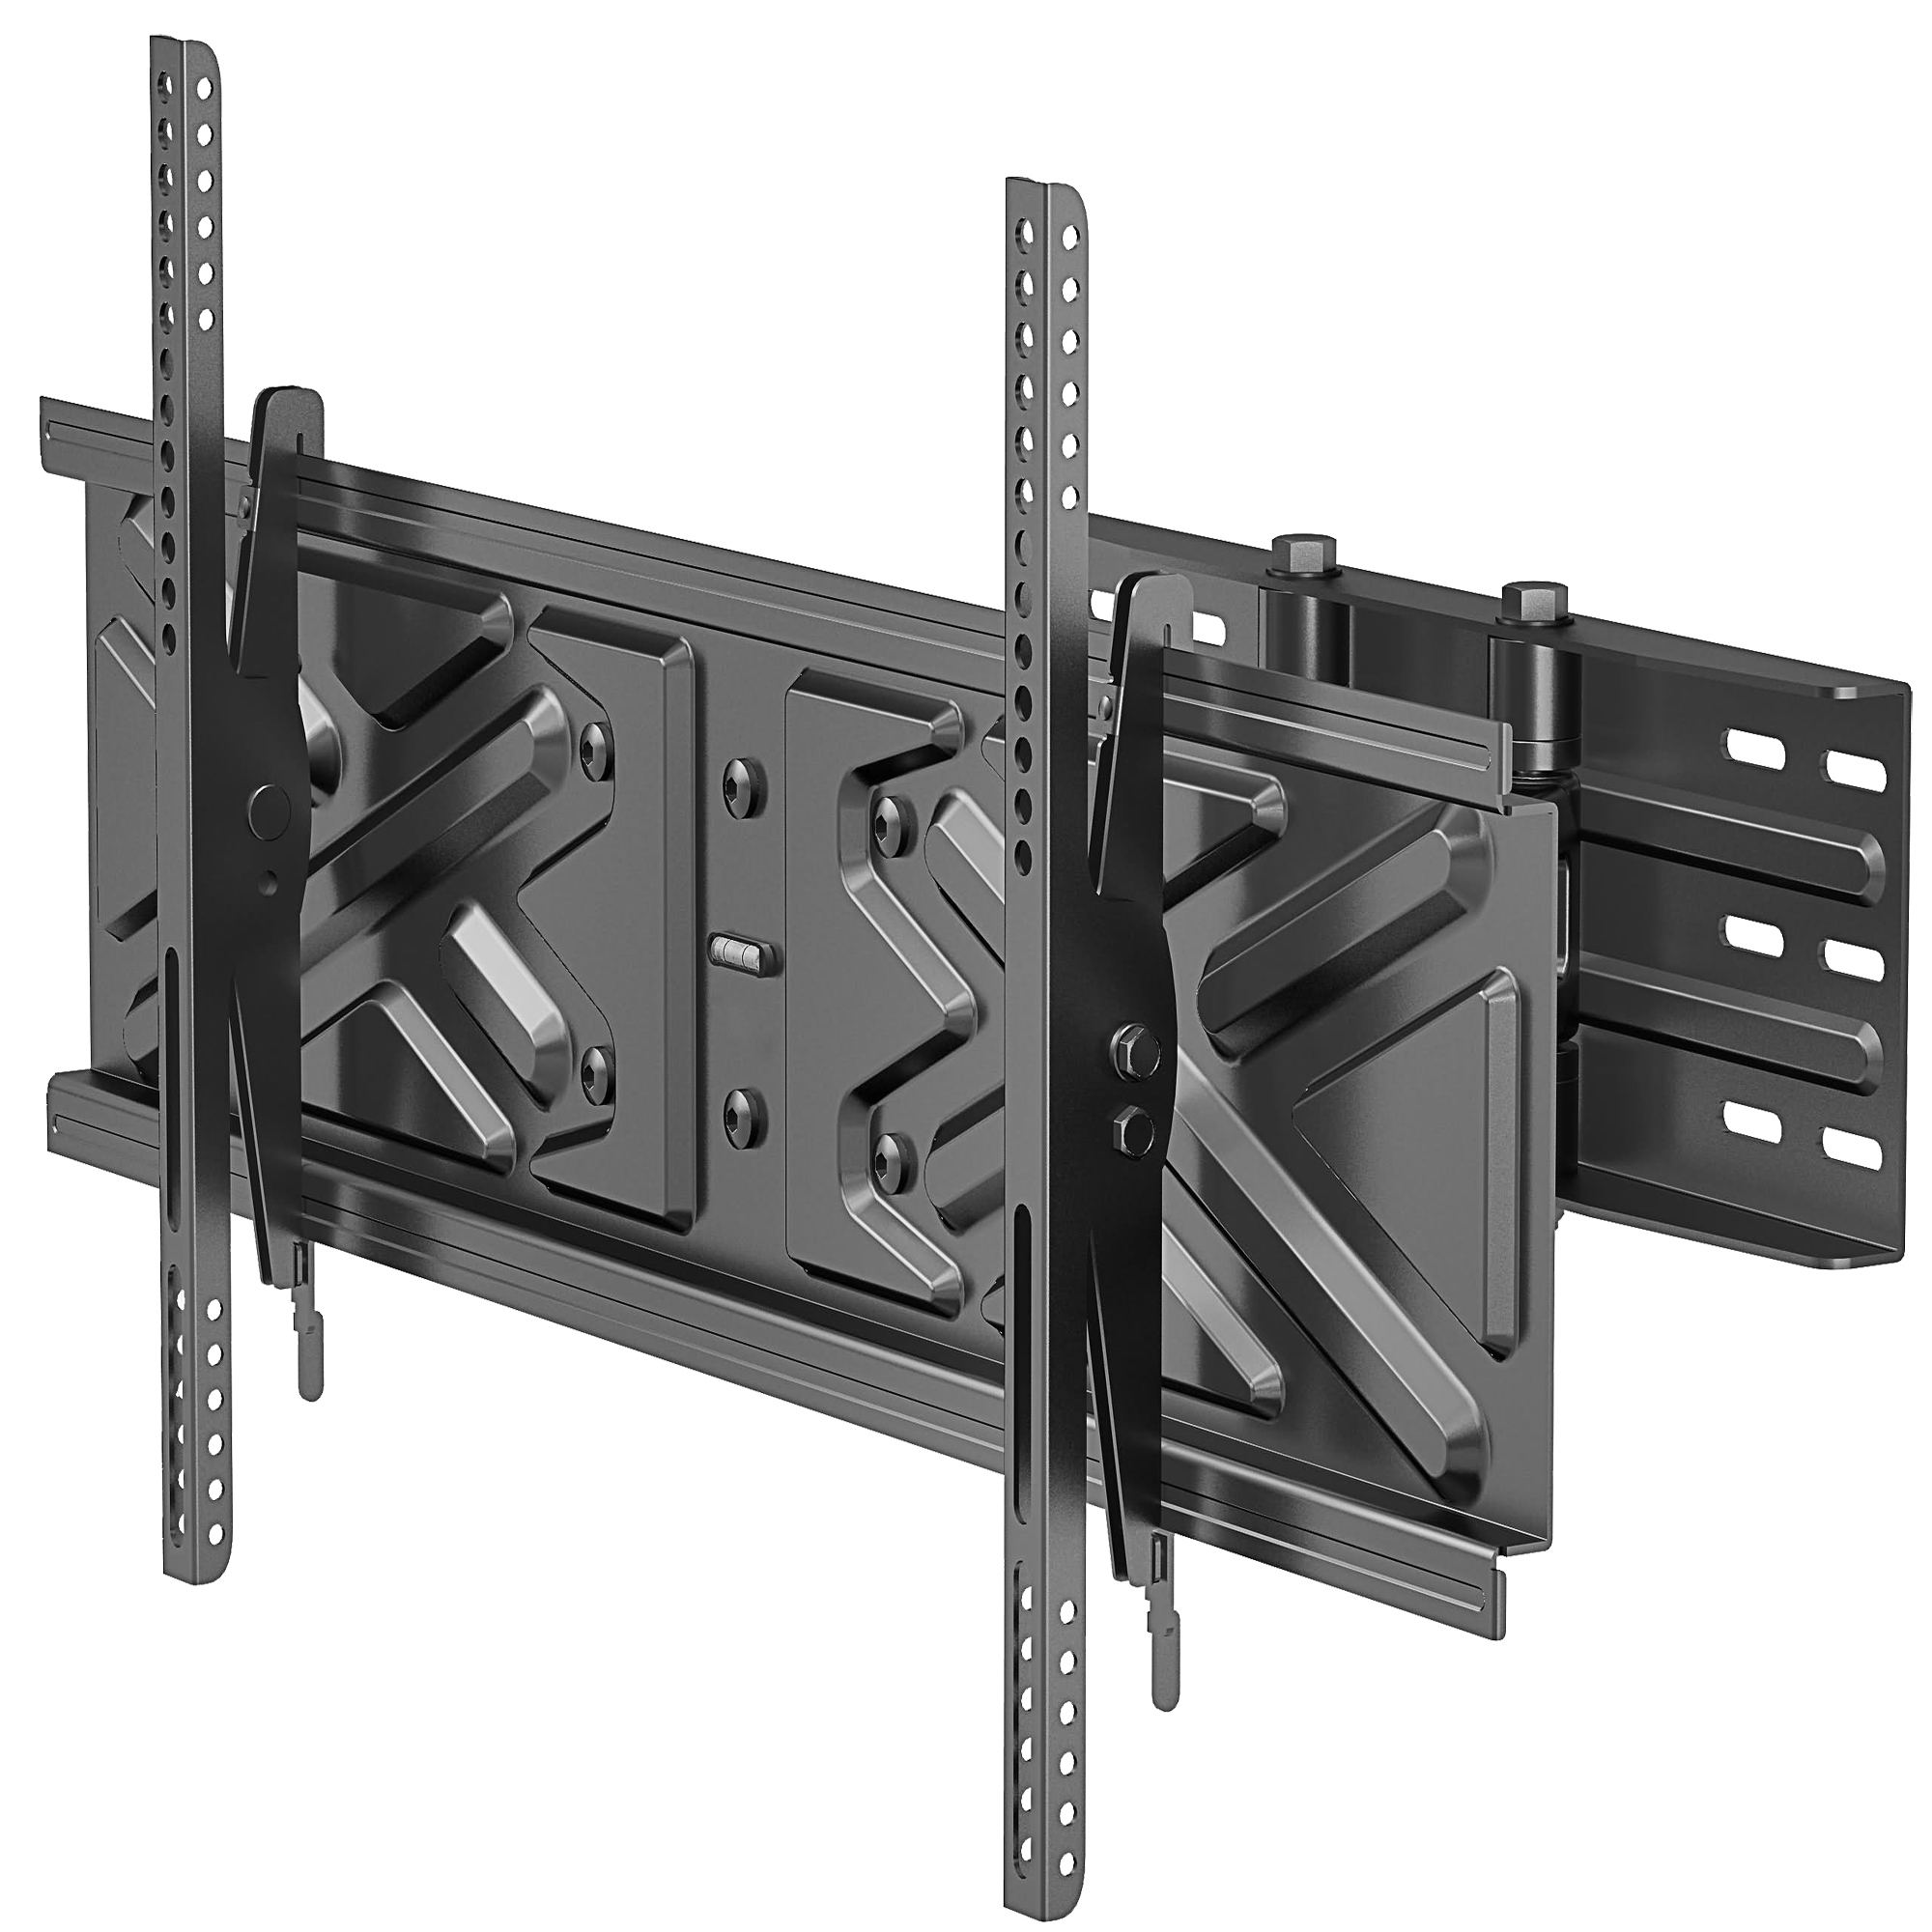 "Level Mount Mounting Arm for Flat Panel Display - 37"" to 75"" Screen Support - 150.00 lb Load Capacity - Steel - Matte Black"